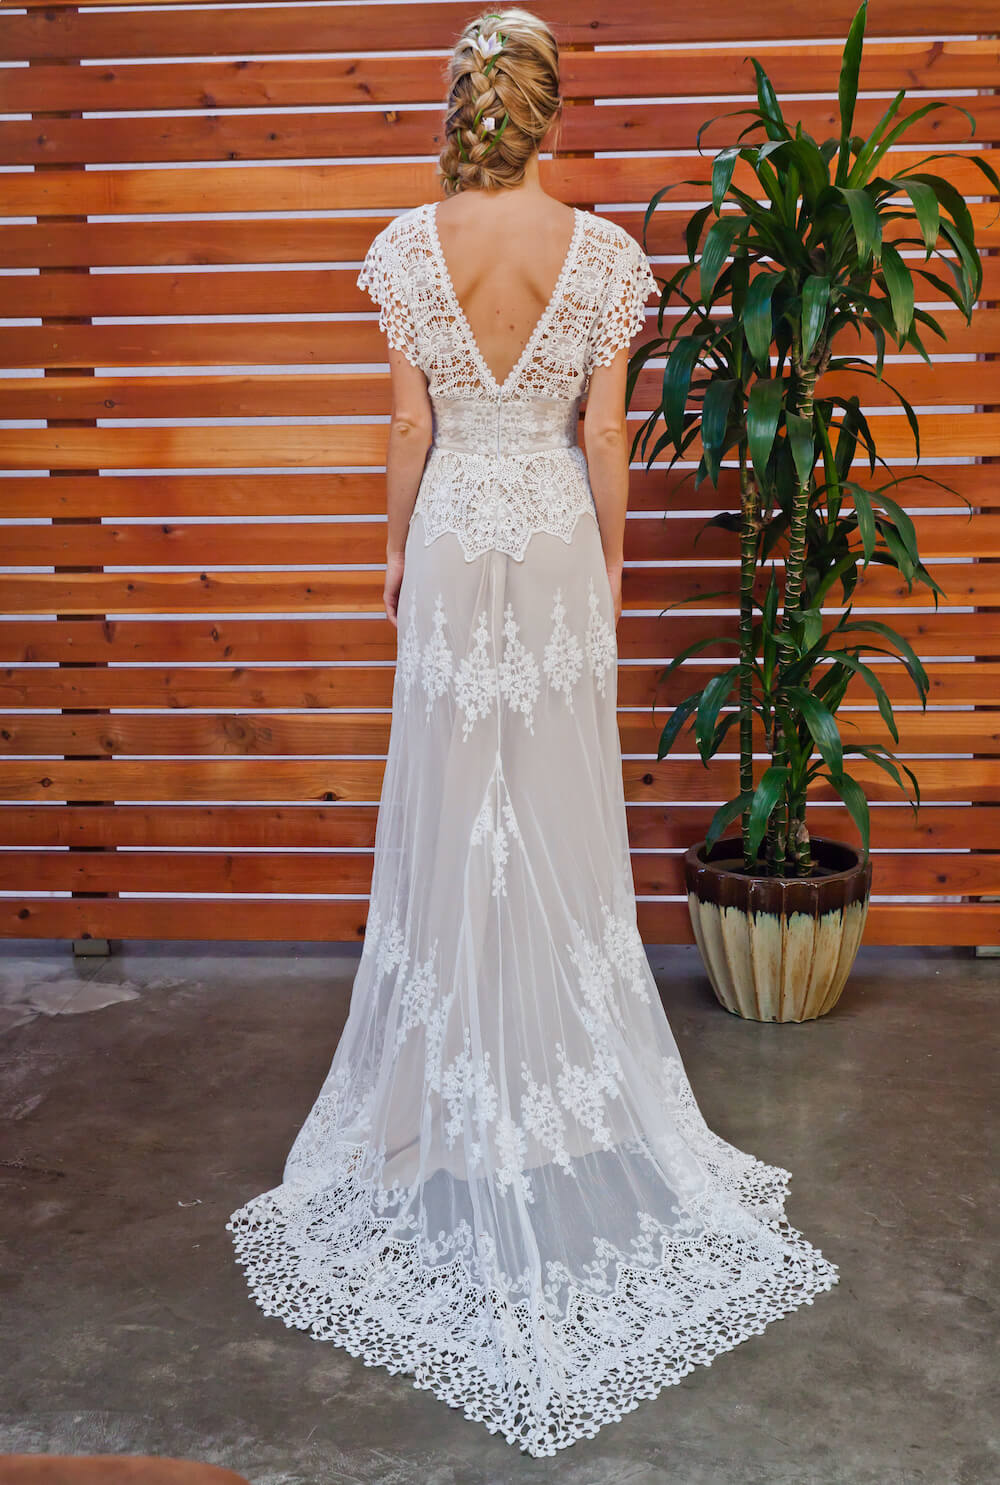 Azalea draped cotton lace wedding dress dreamers and lovers for Wedding dress display at home